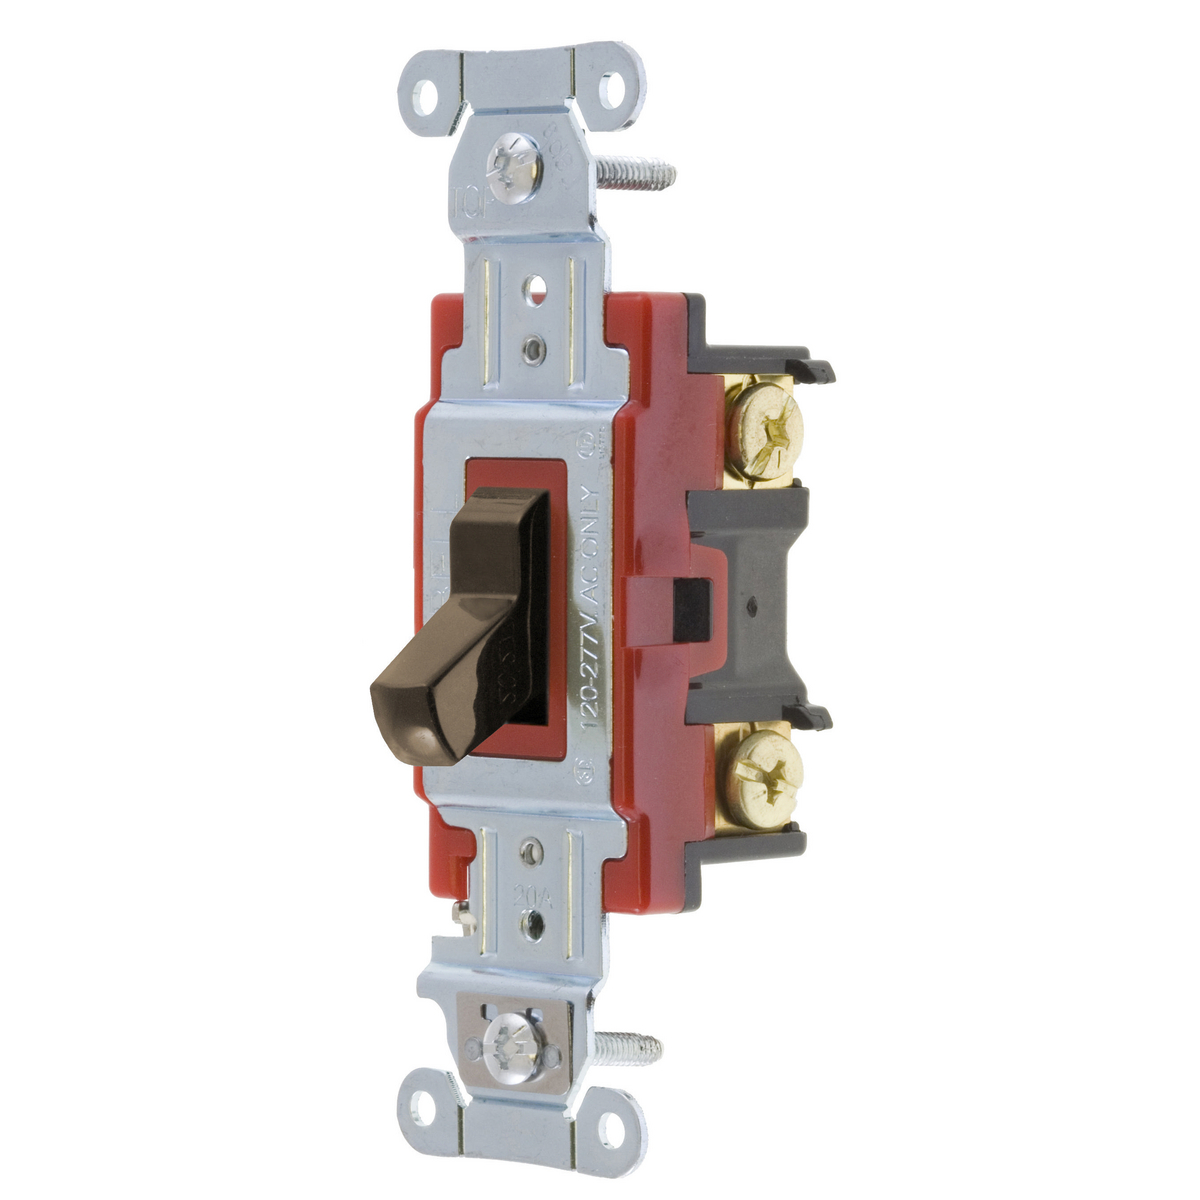 1223b Brand Wiring Device Kellems Hubbell Receptacles Gfci Diagram By